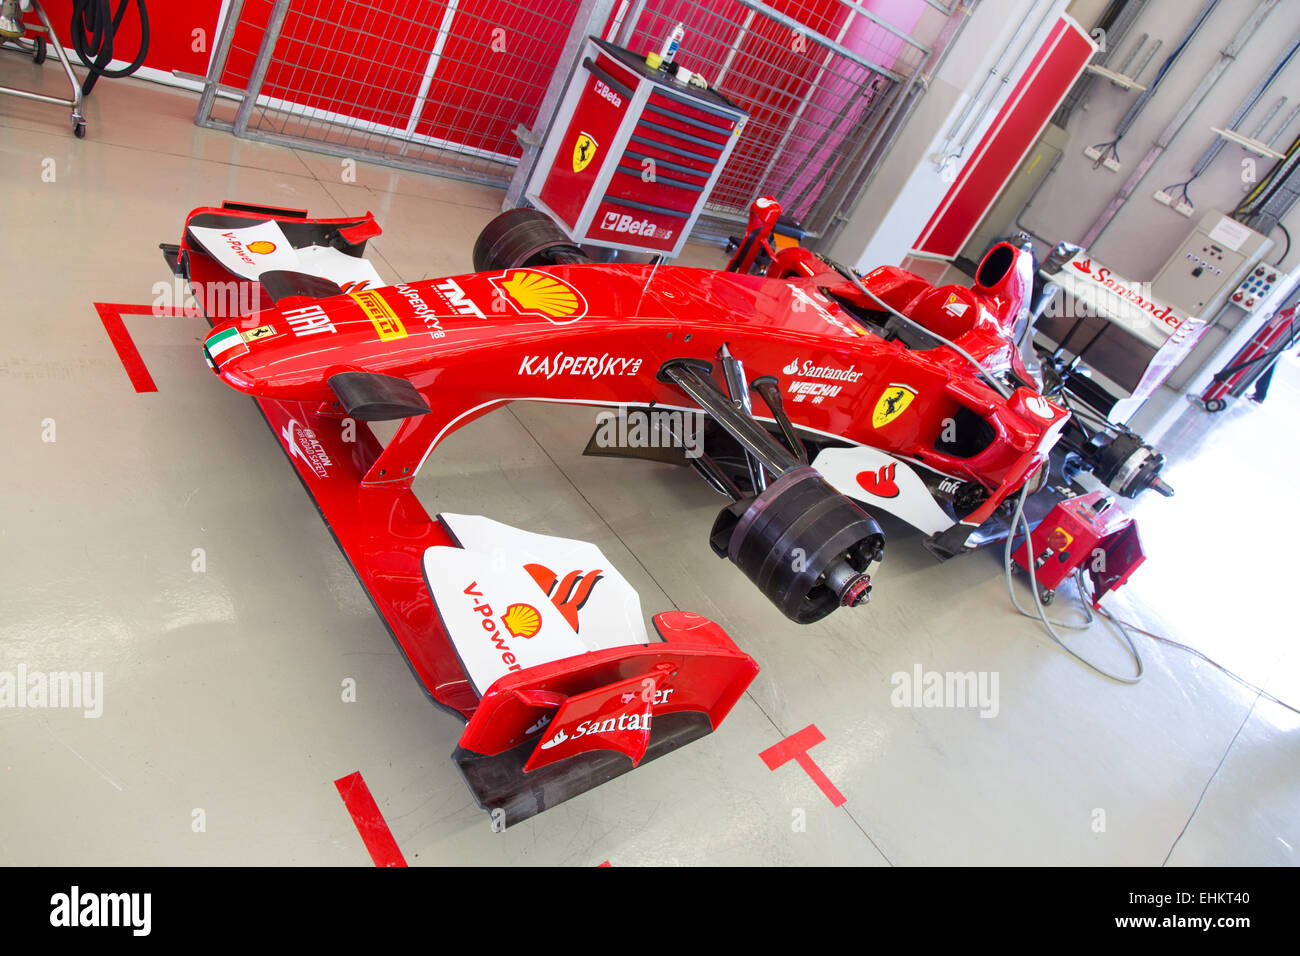 istanbul turkey october 25 2014 f1 car garage ferrari